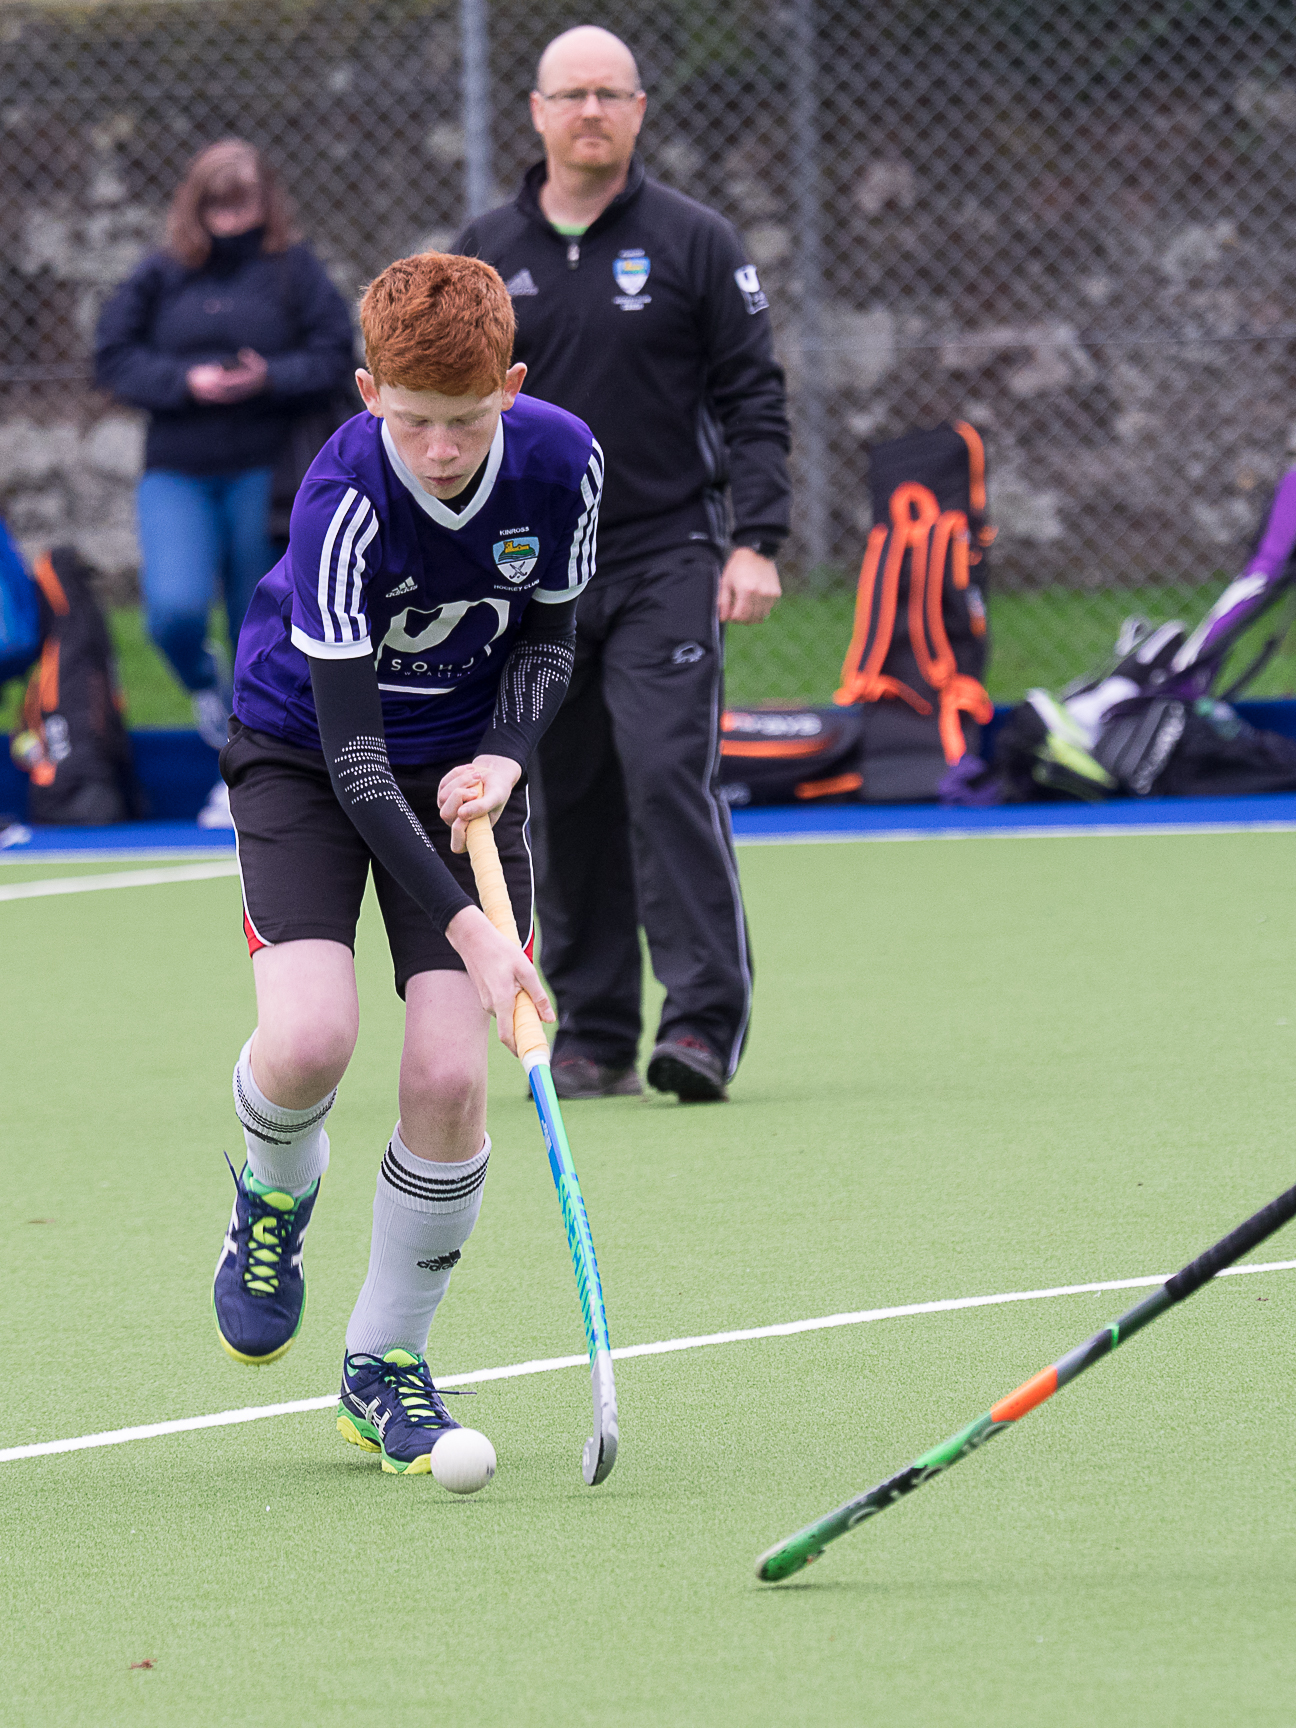 Hockey Kinross Sept 24th-10.jpg